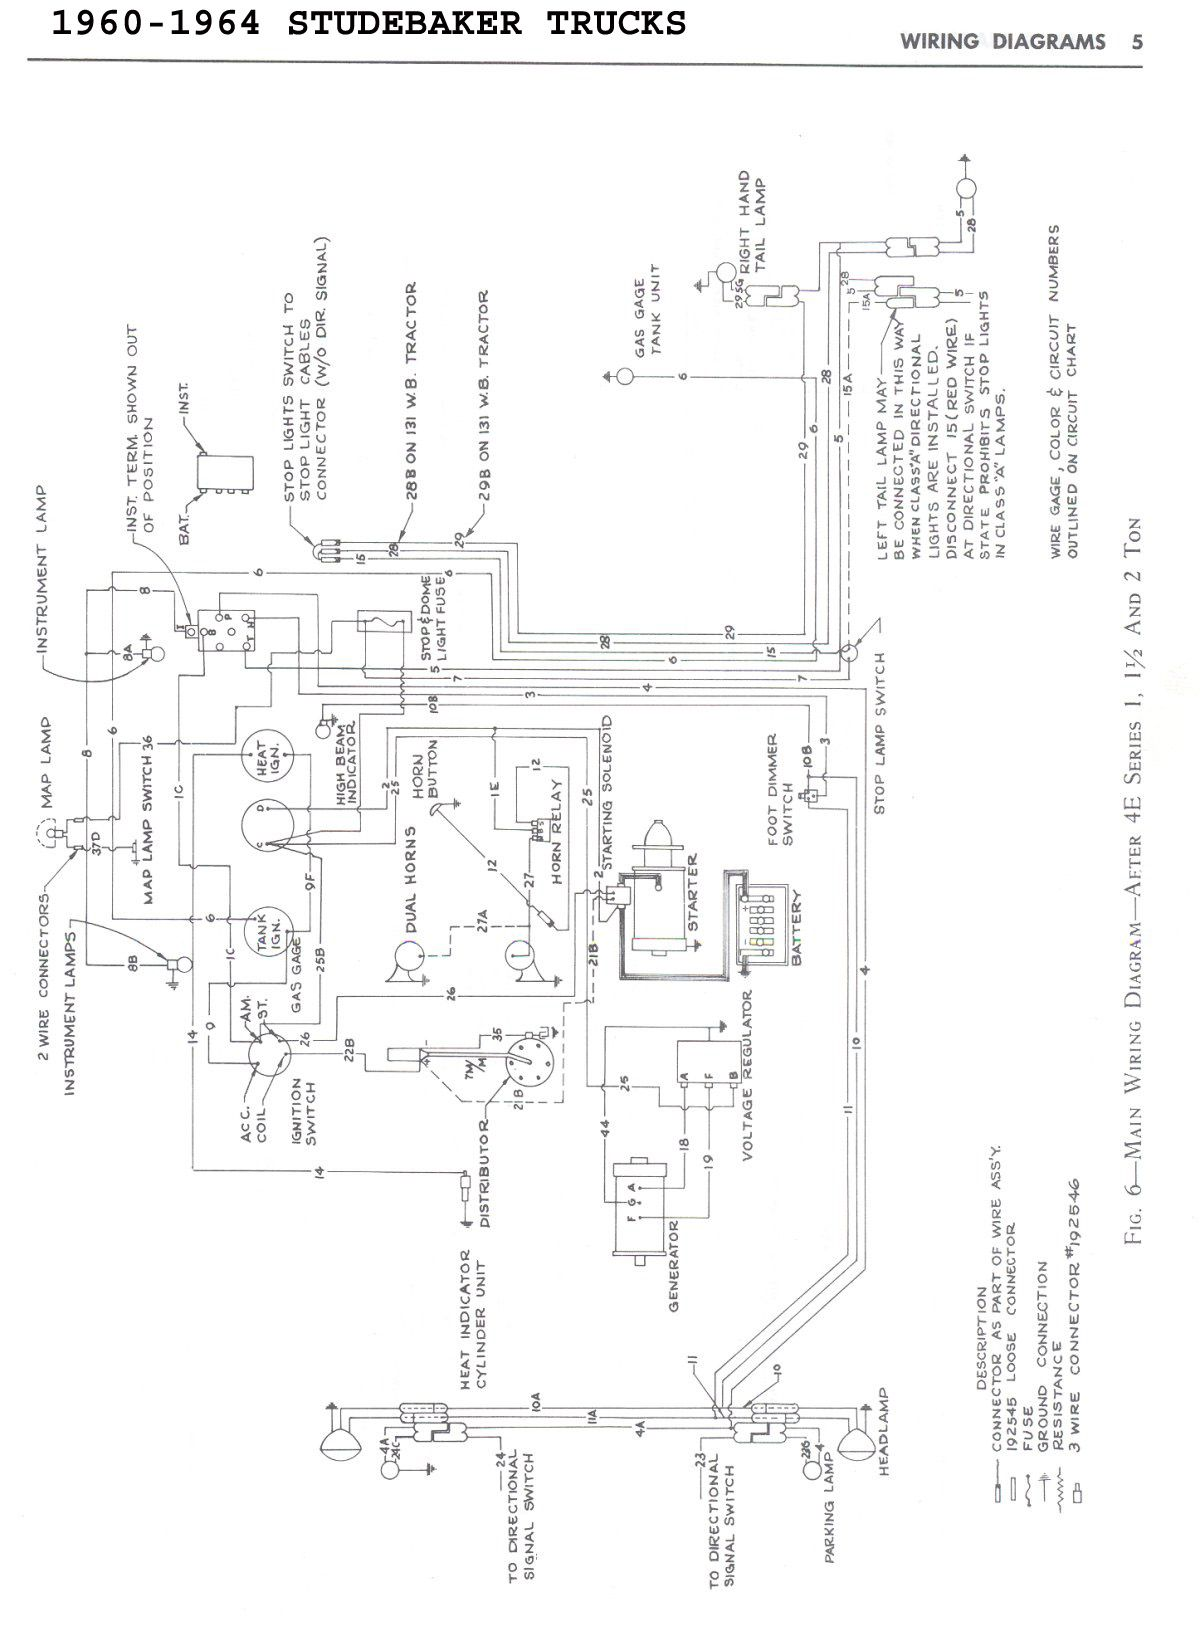 Related Image Technical Drawing Blueprint Drawing Blueprints